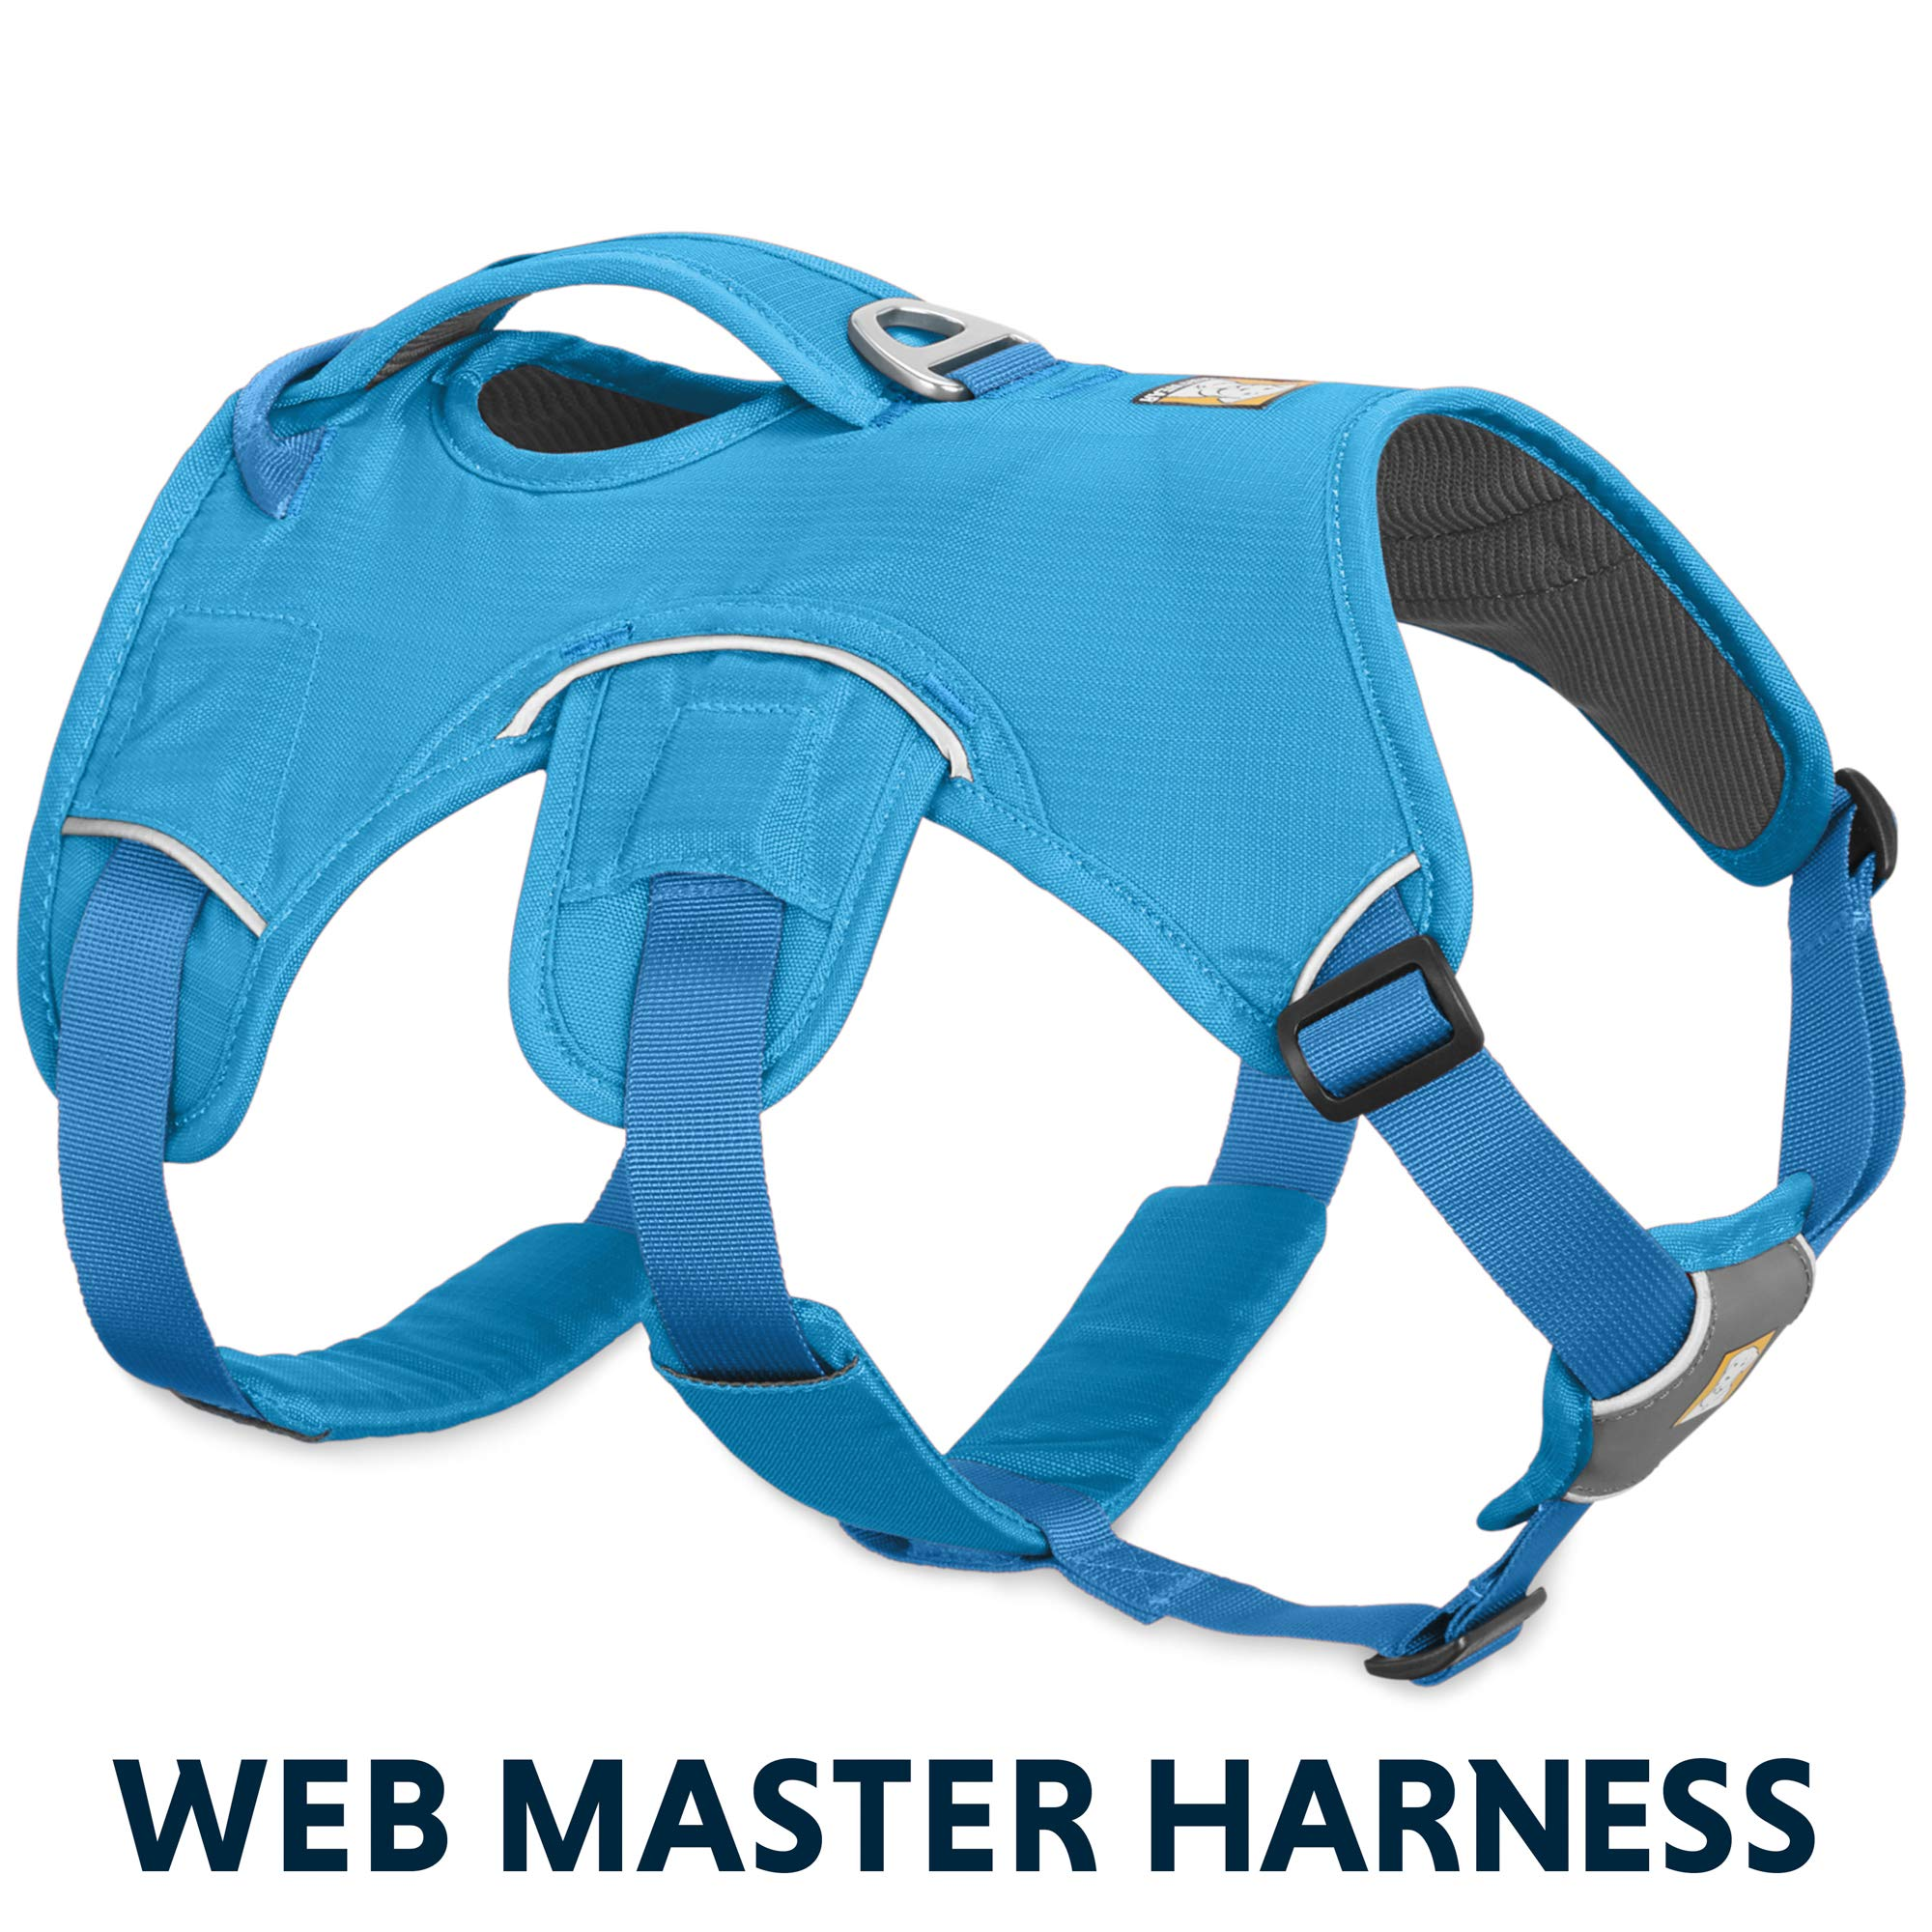 RUFFWEAR - Web Master, Multi-Use Support Dog Harness, Hiking and Trail Running, Service and Working, Everyday Wear, Blue Dusk, Medium by RUFFWEAR